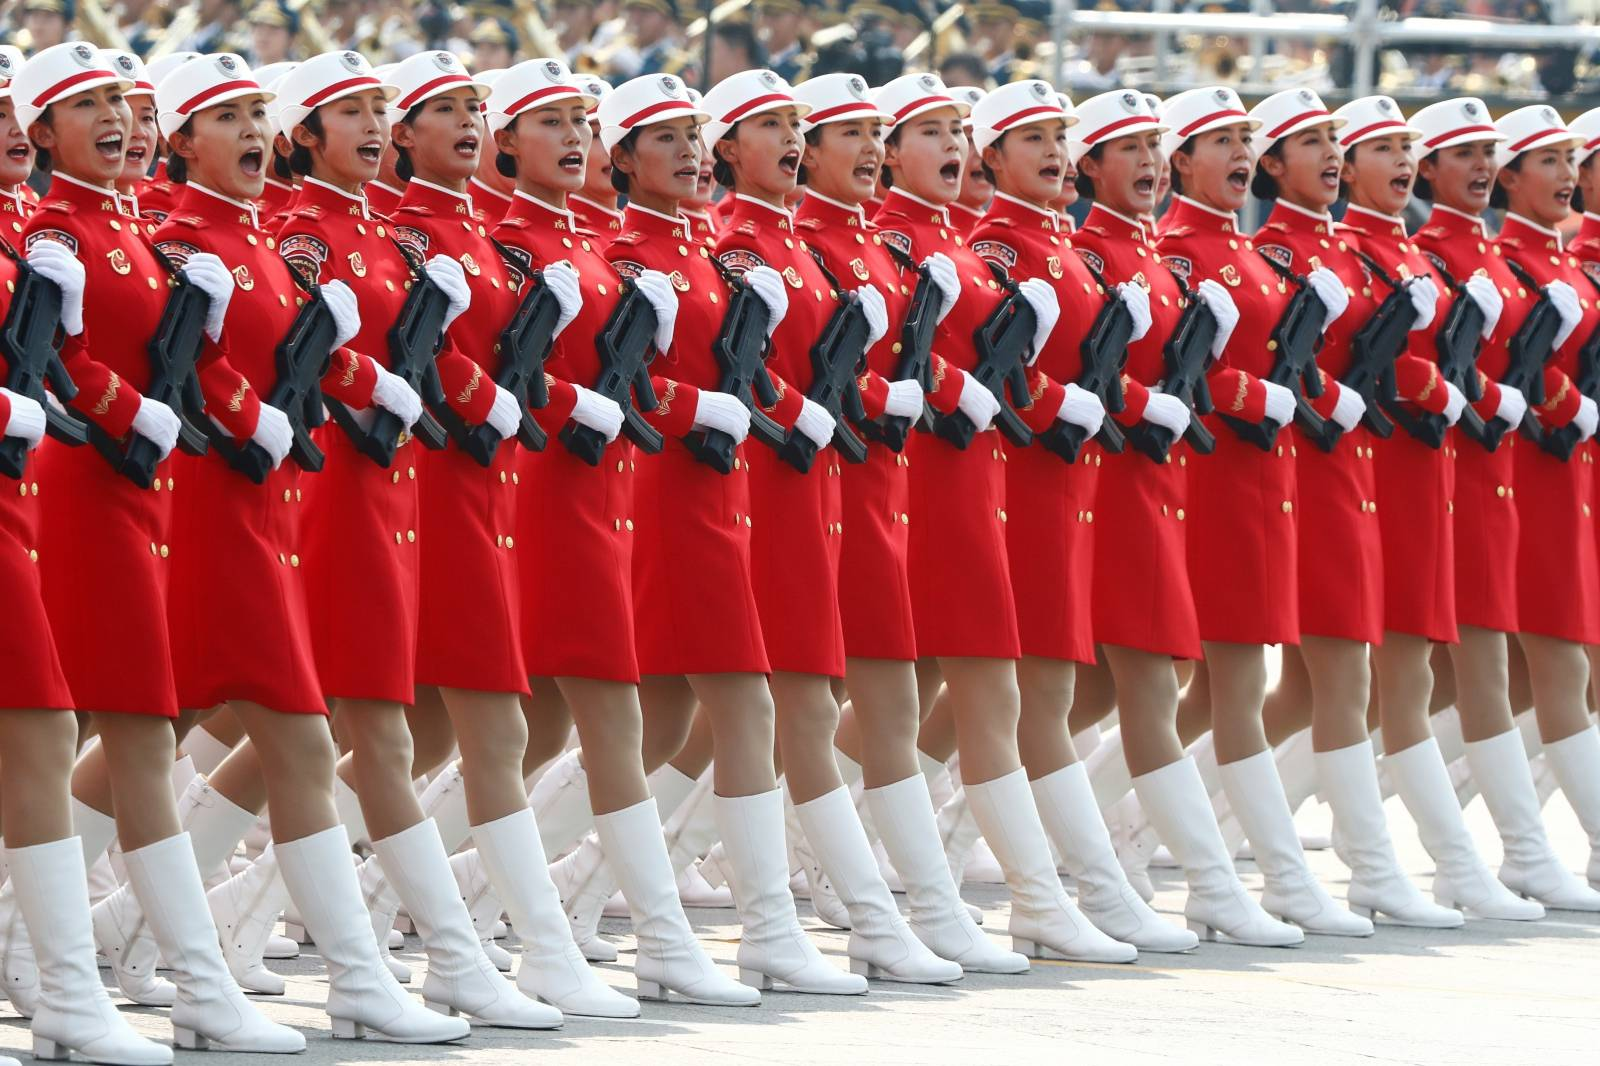 Militia members march in formation past Tiananmen Square during the military parade marking the 70th founding anniversary of People's Republic of China